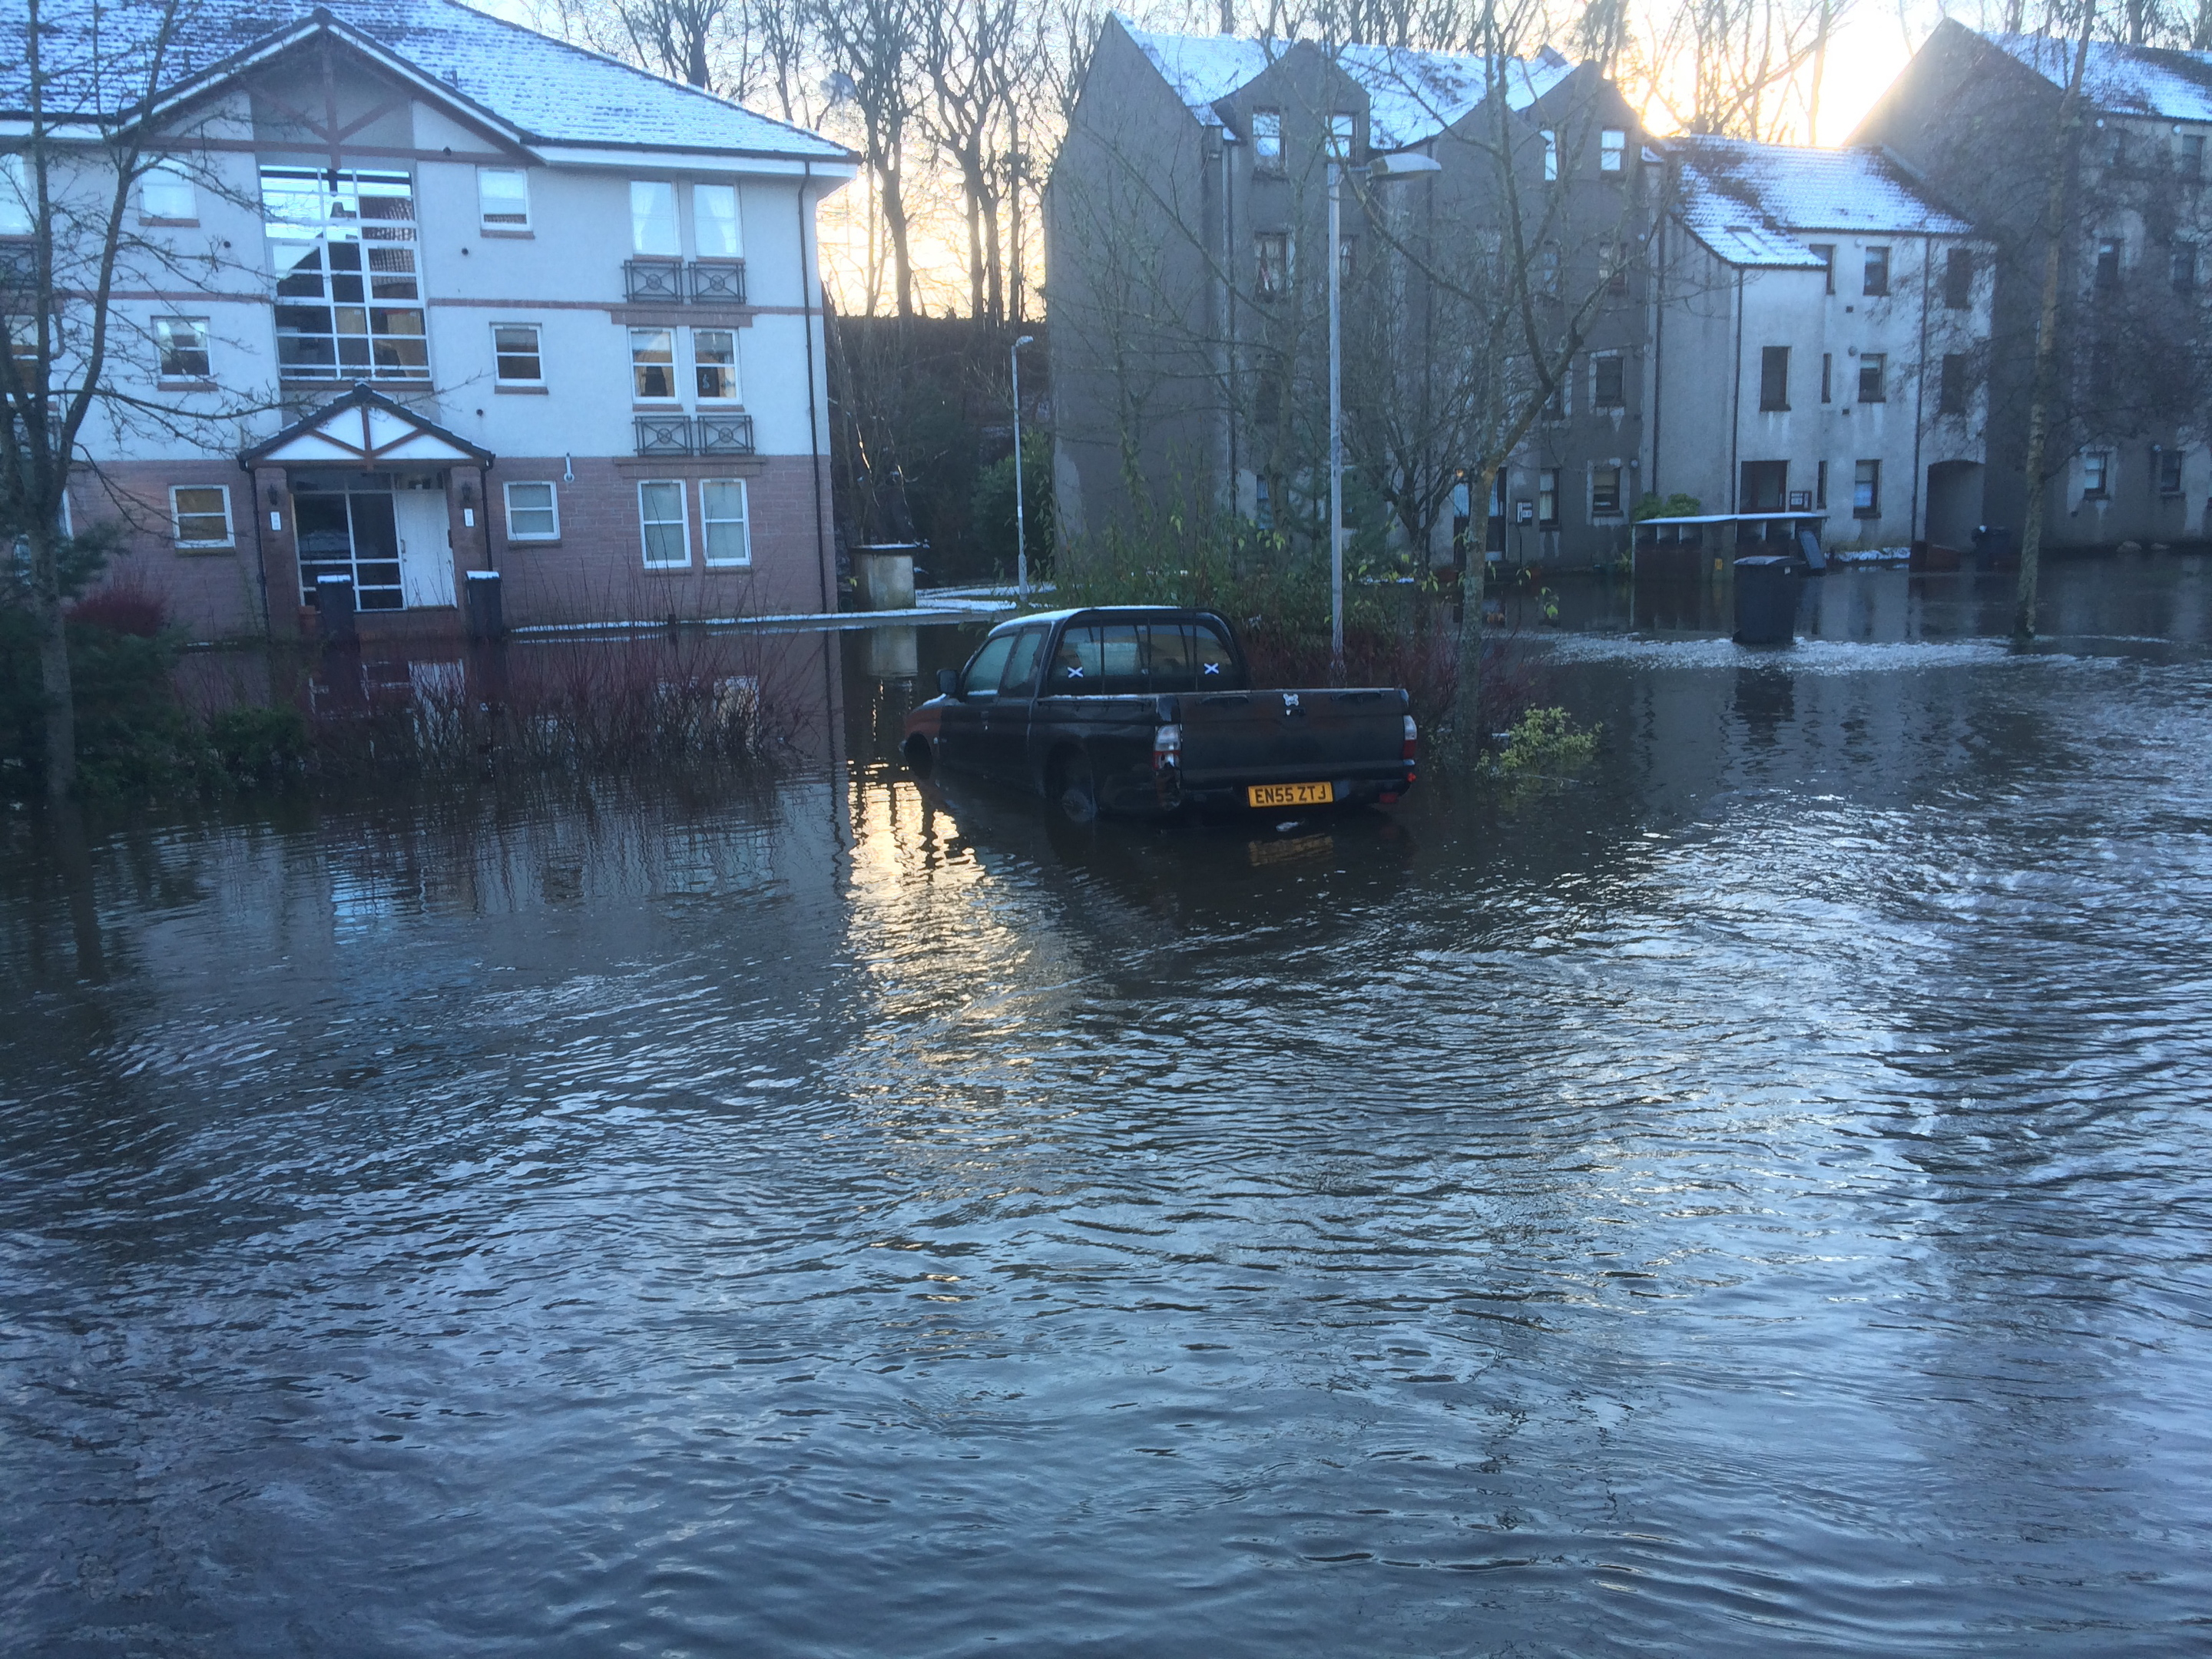 Flood water in the Millside area of Peterculter left this car stranded.